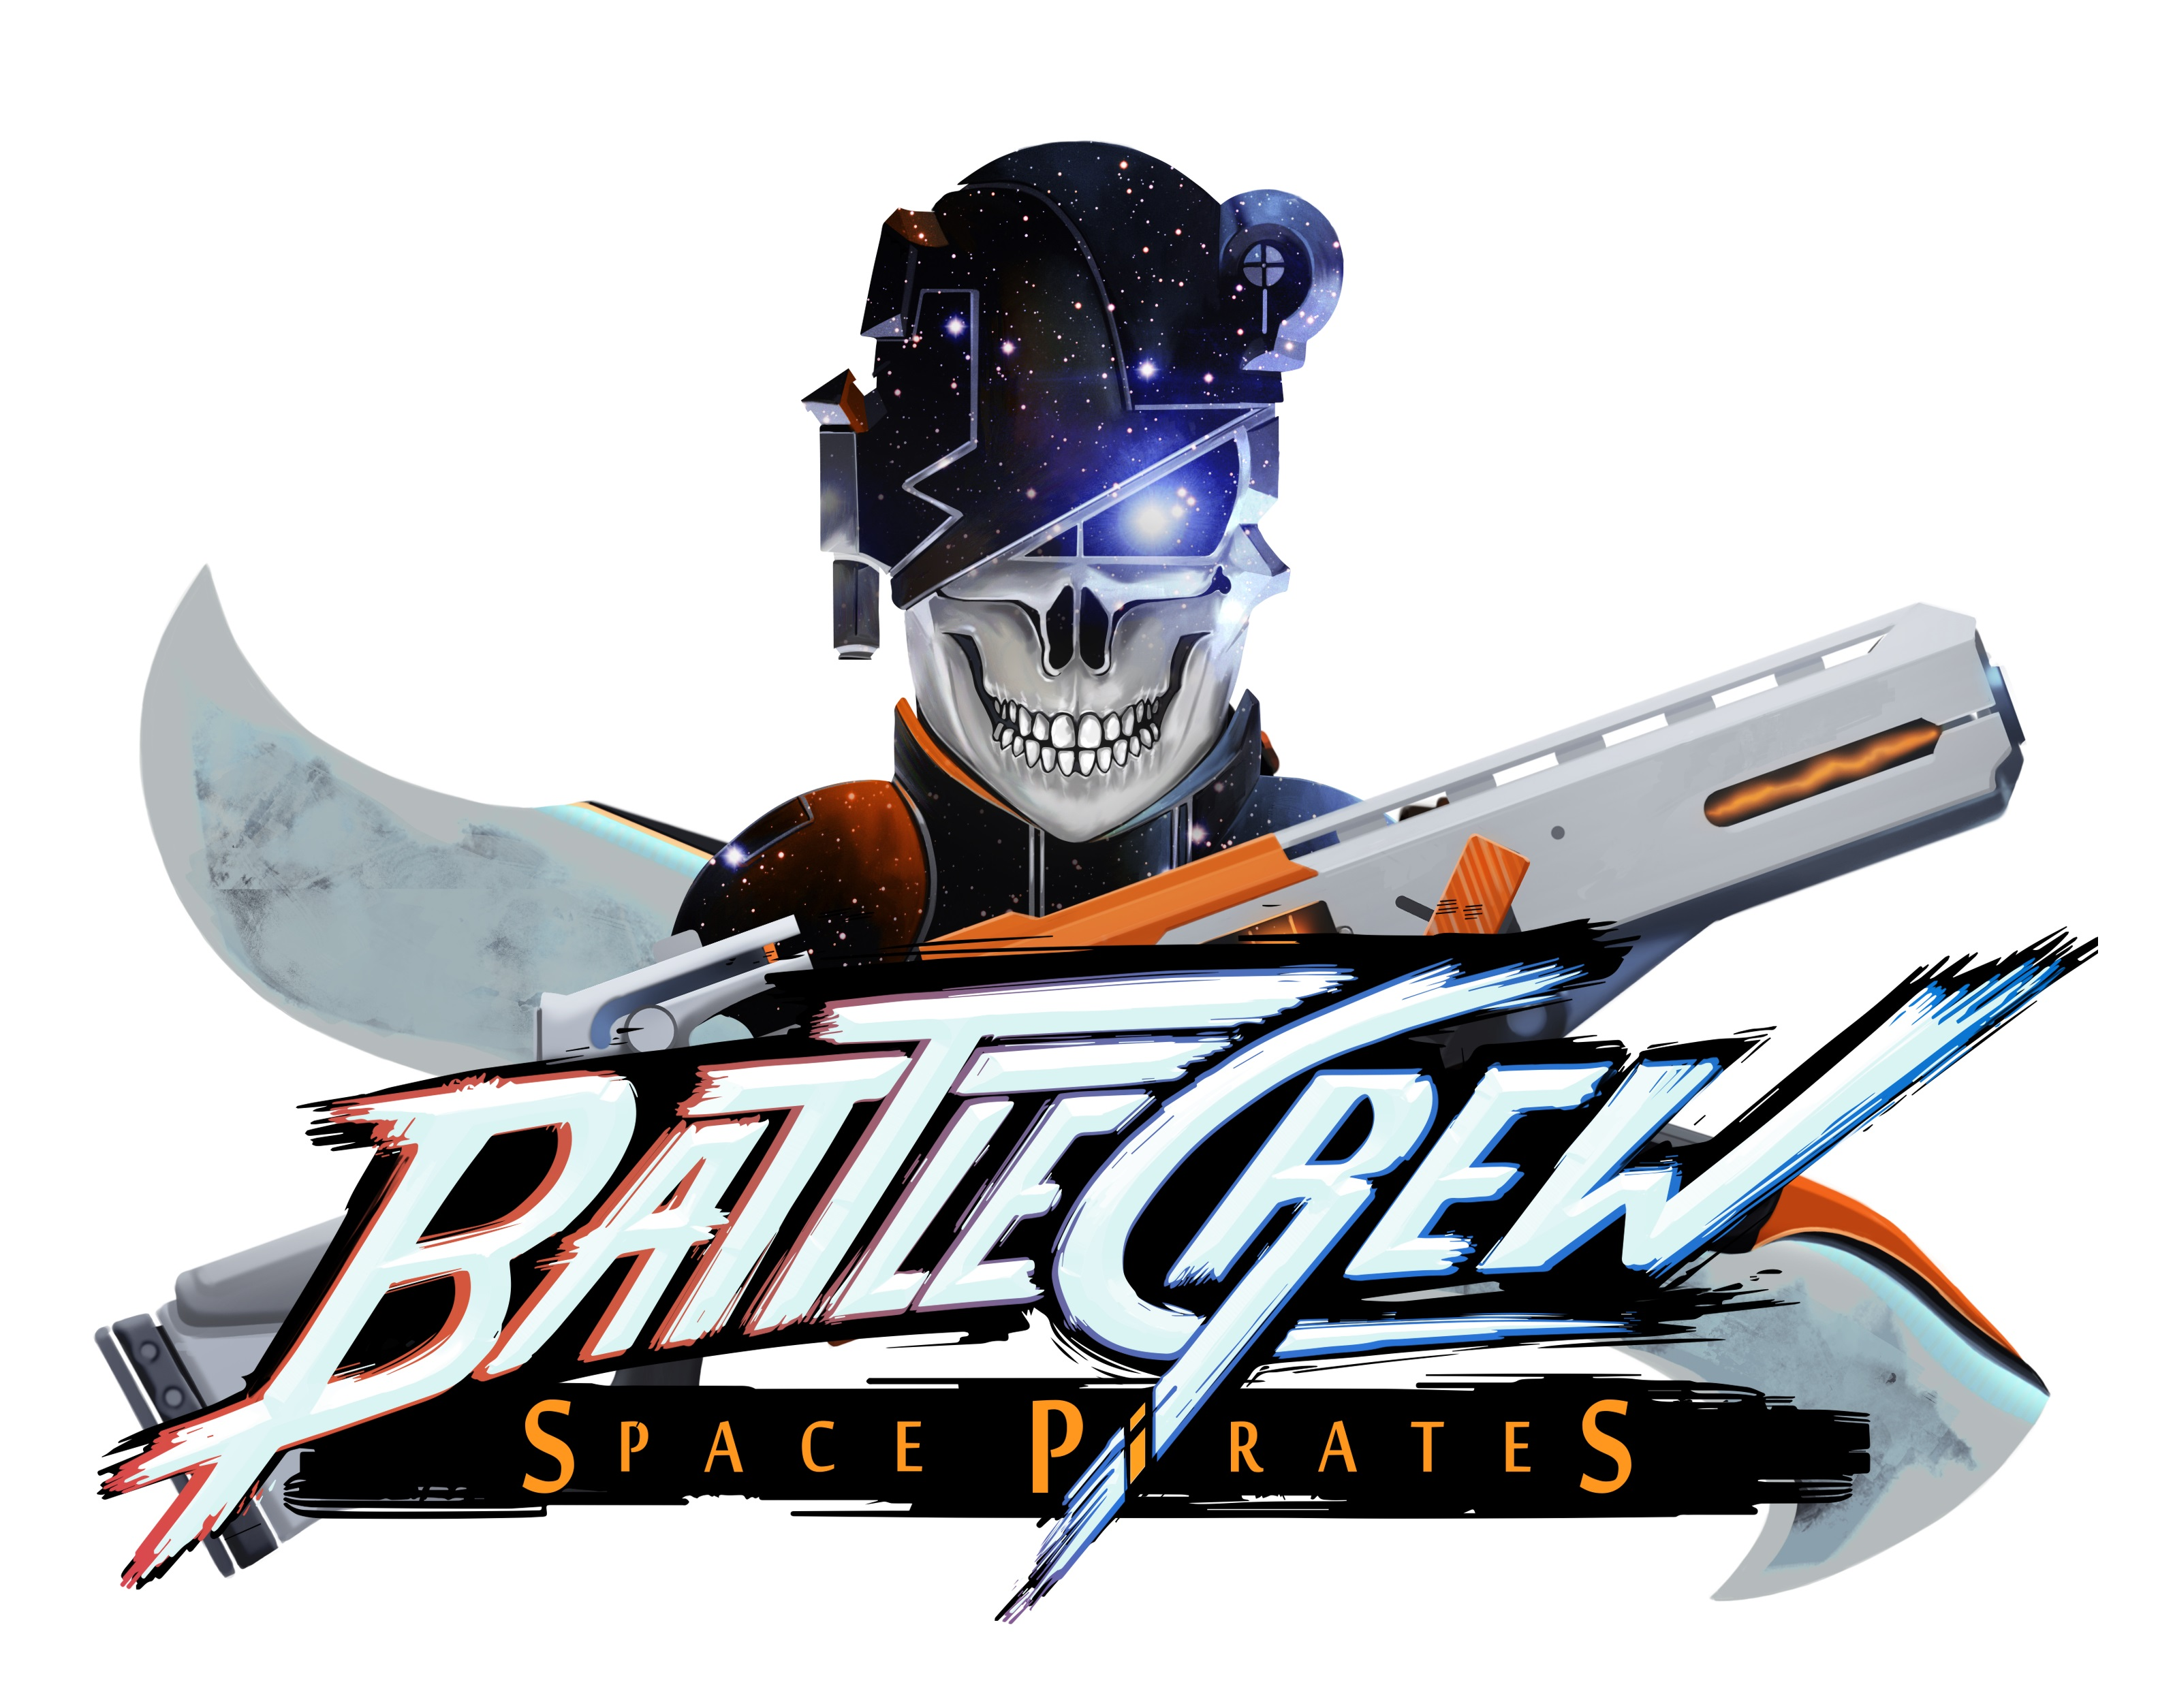 BATTLECREW Space Pirates : All Pirates Skins